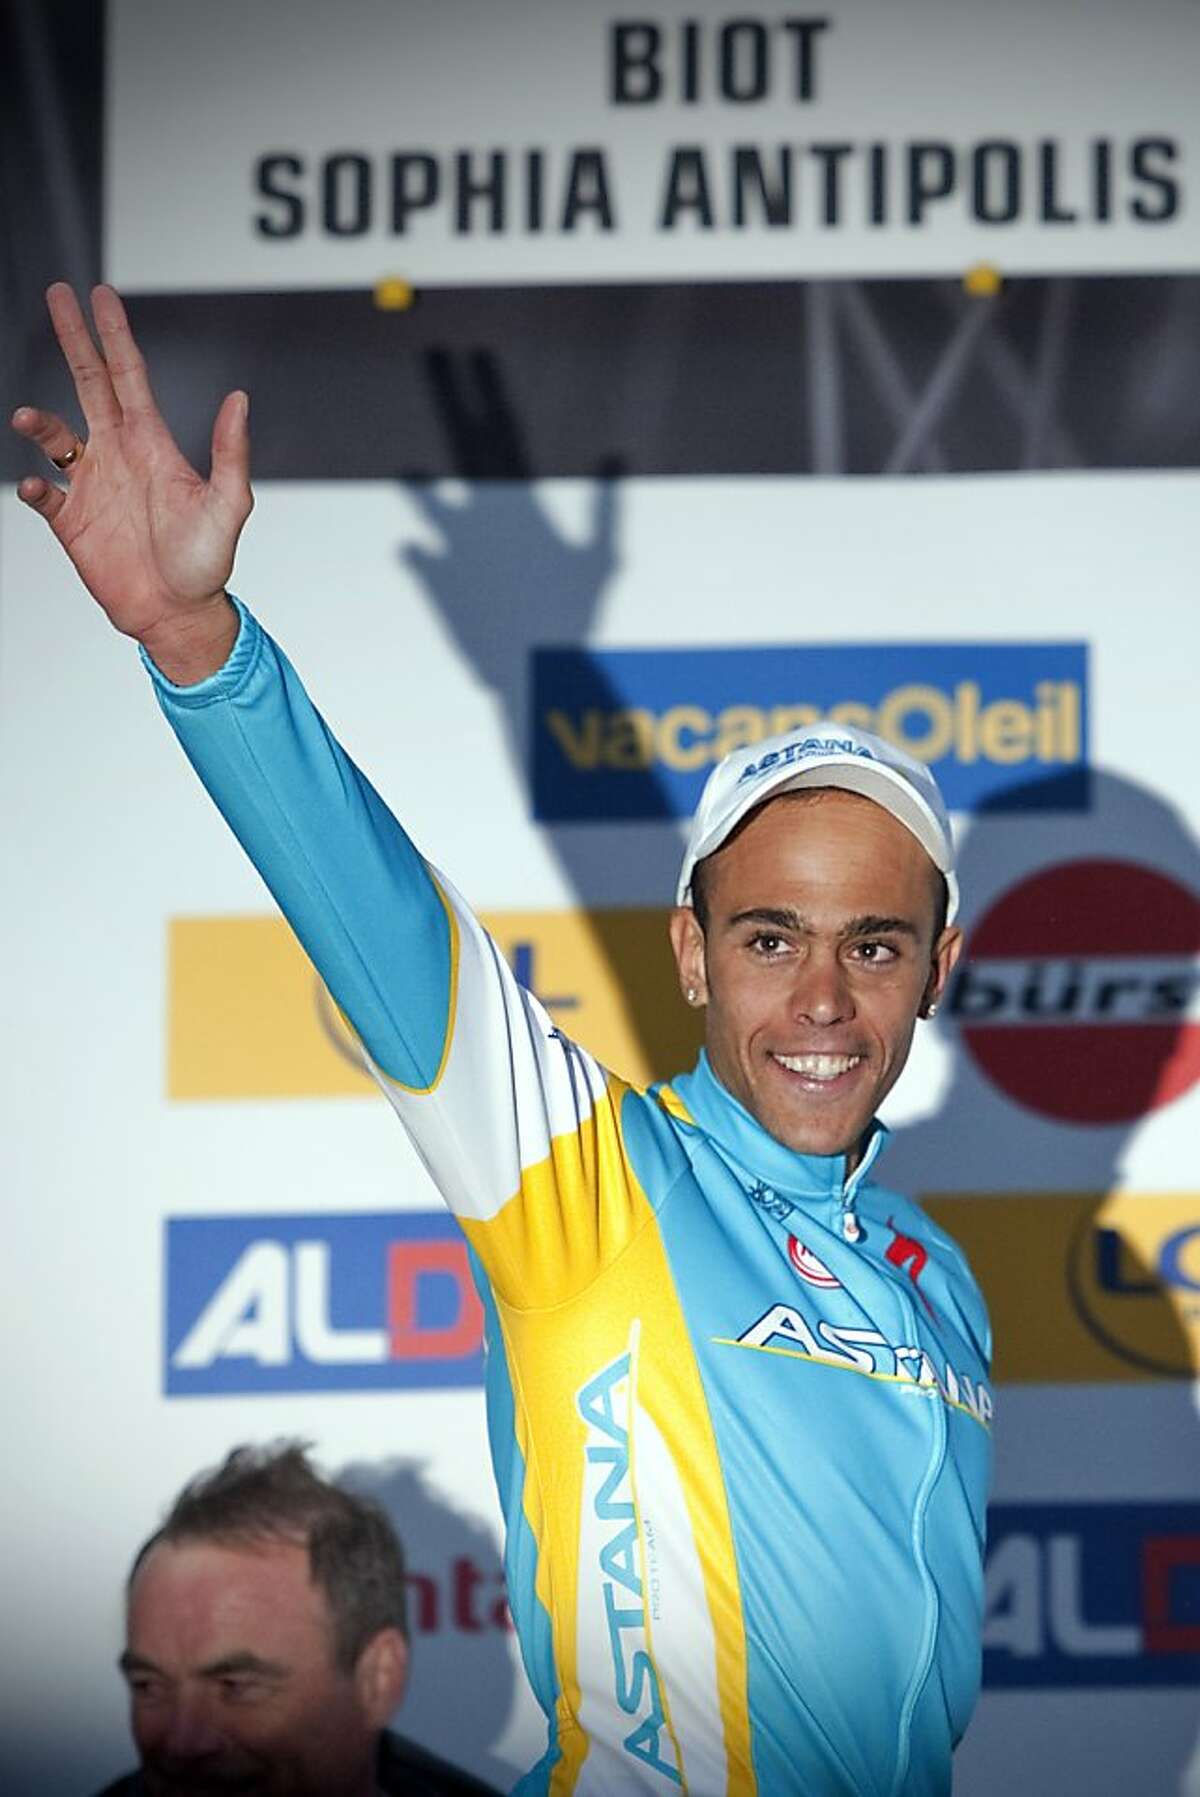 A file picture taken on March 12, 2011 shows French Remy Di Gregorio (Astana) waving on the podium after he won the 7th stage of the 69th Paris-Nice cycling race between Brignoles and Biot, southern France. Tour de France team Cofidis have suspended Di Gregorio over doping allegations, the team announced on July 10, 2012. AFP PHOTO LIONEL BONAVENTURELIONEL BONAVENTURE/AFP/GettyImages